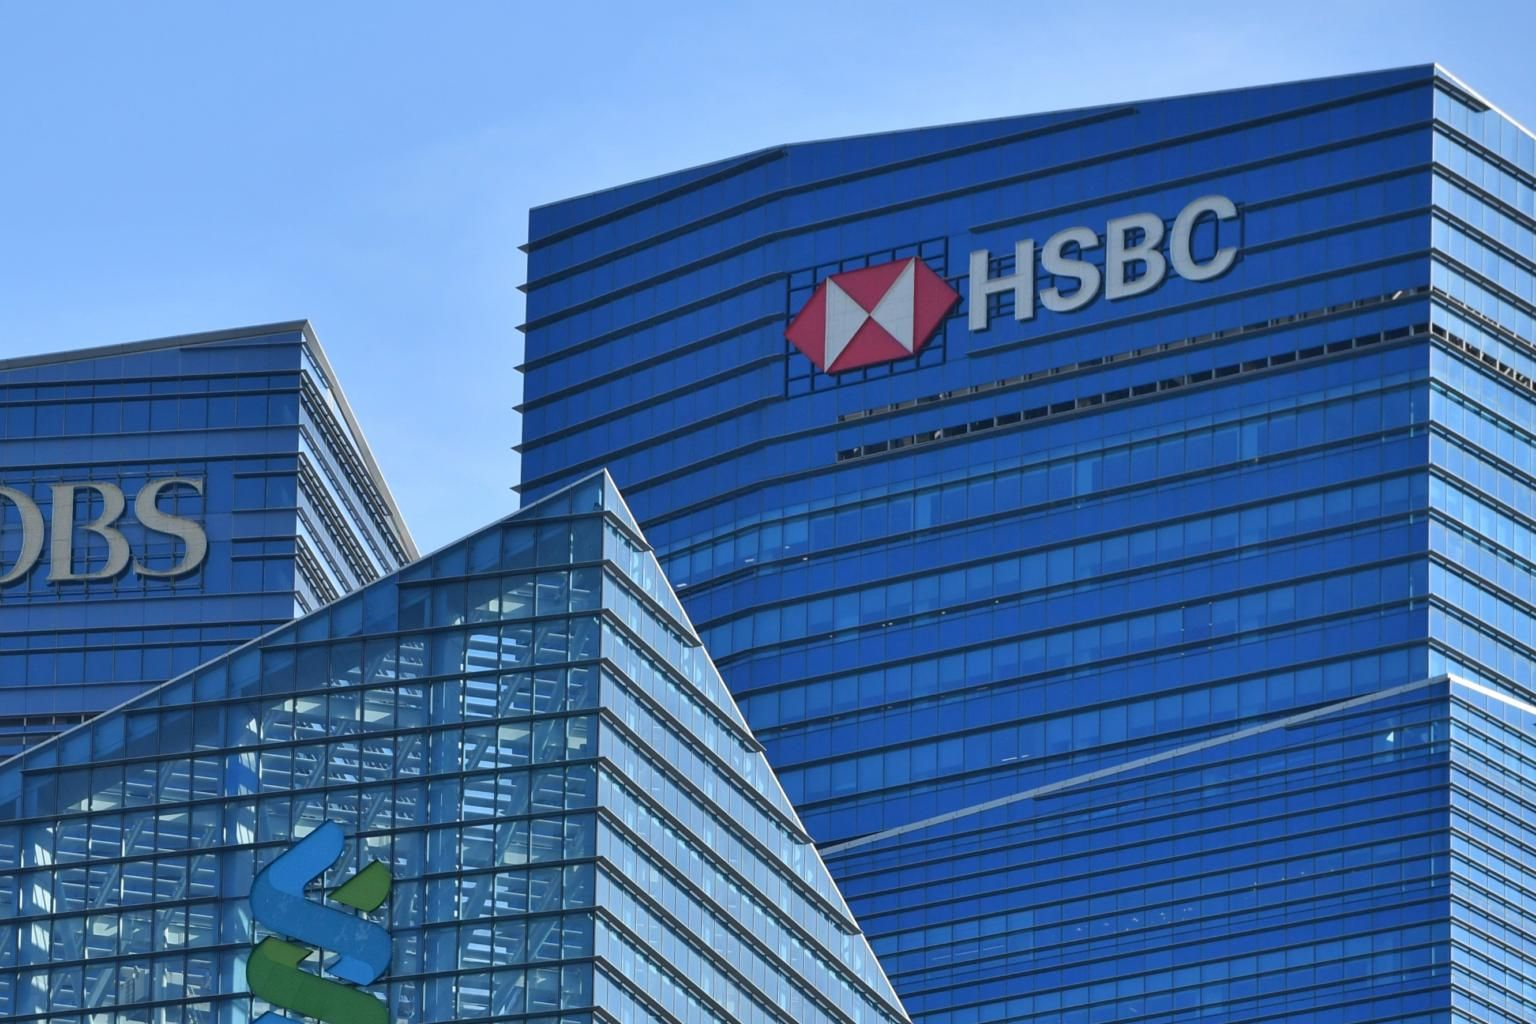 HSBC Singapore moves into new digs with hybrid model, Banking & Finance - THE BUSINESS TIMES